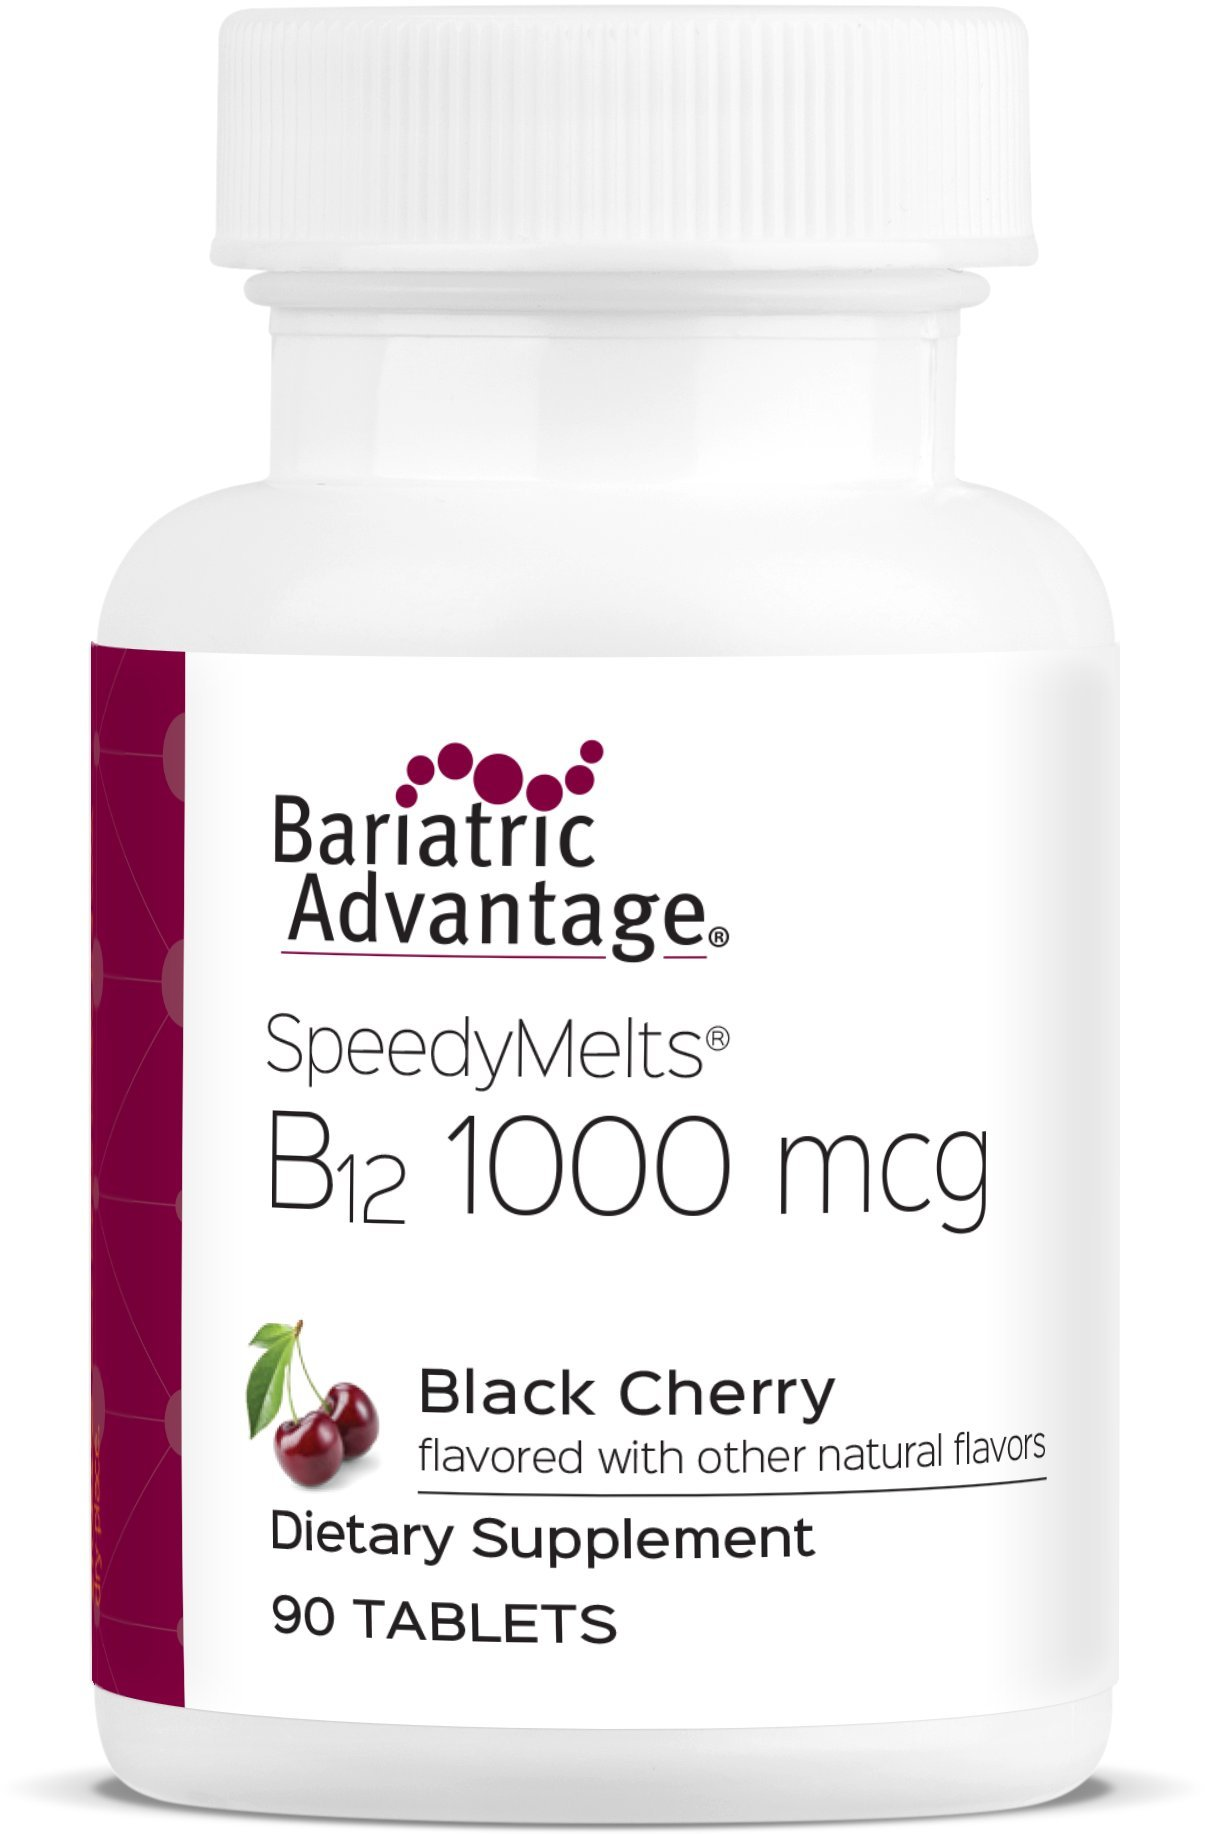 Bariatric Advantage B-12 Speedy Melts (Black Cherry, 90 Count)